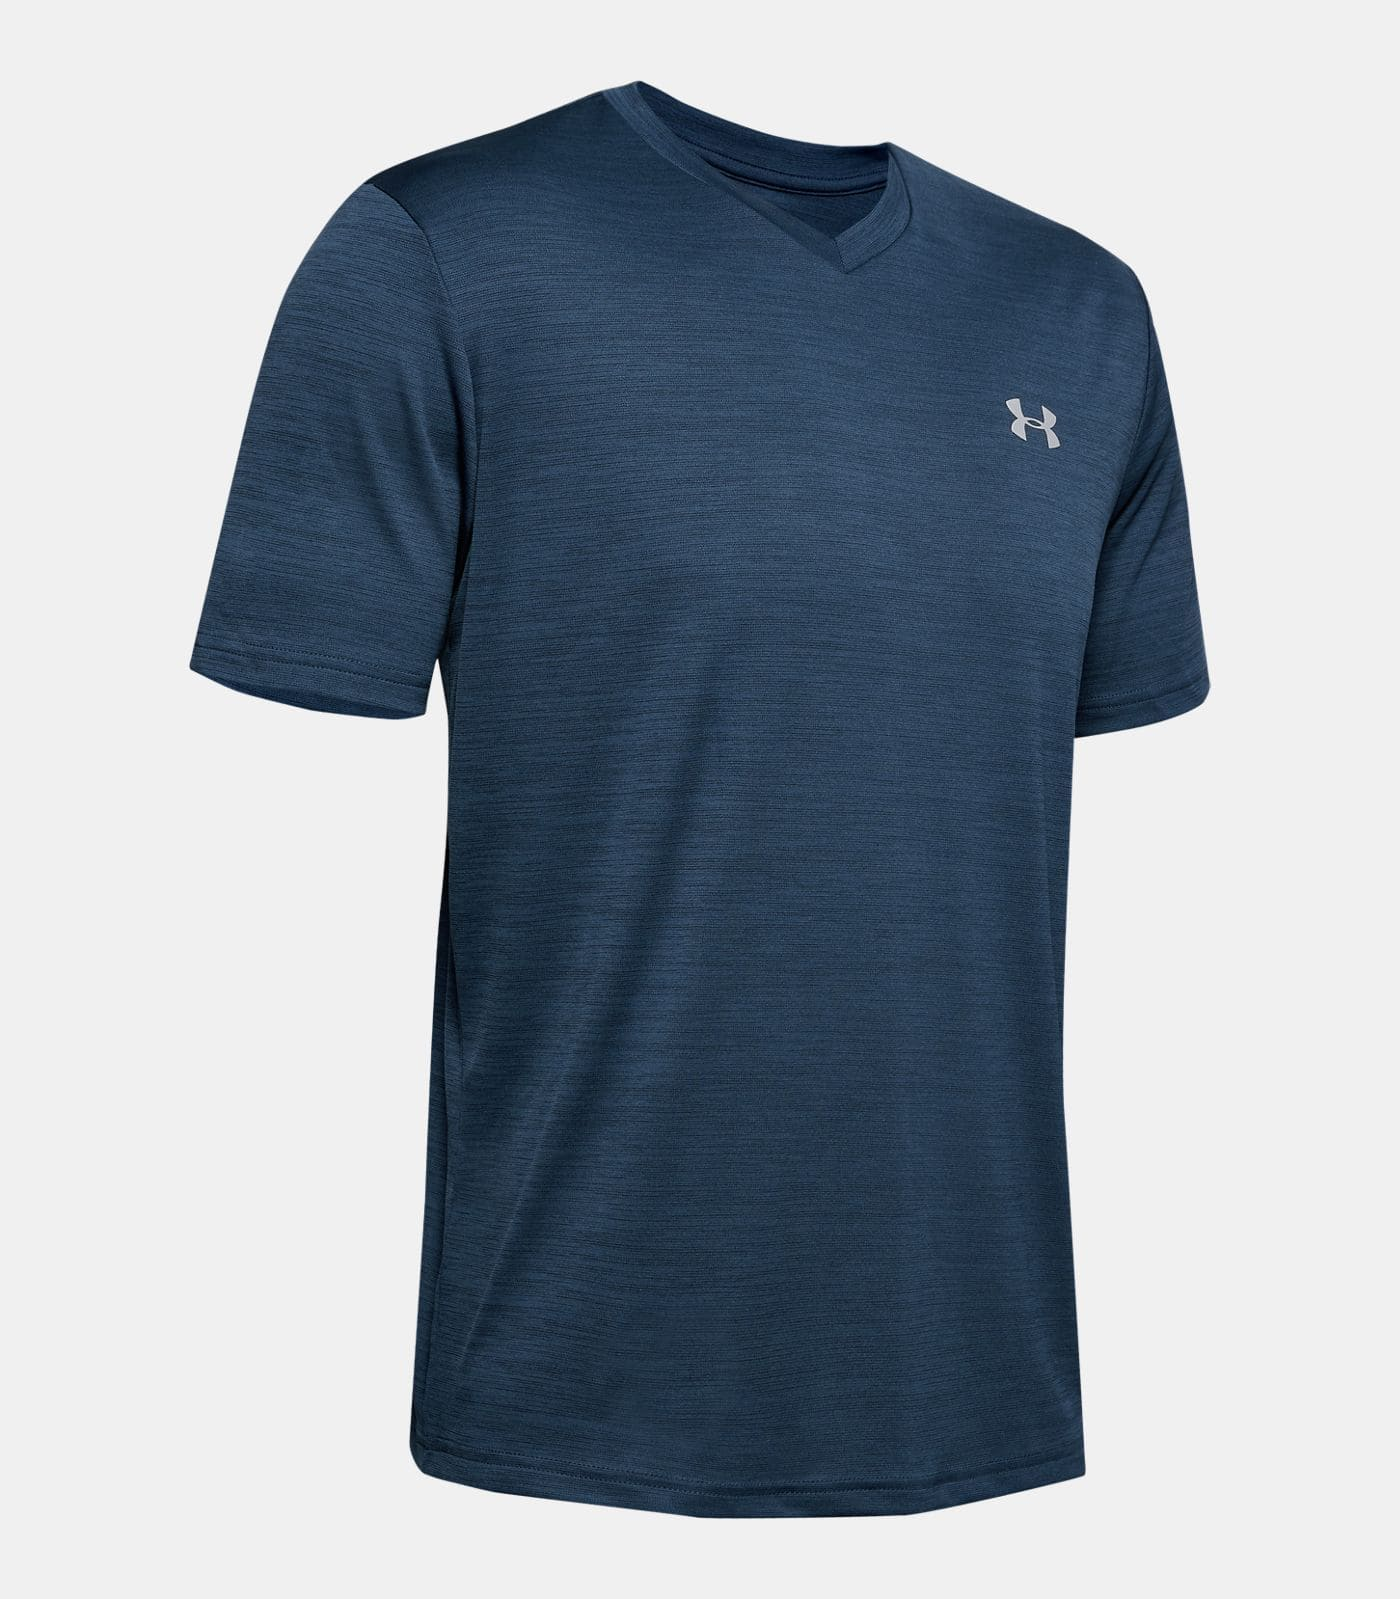 Under Armour Outlet Coupon for Additional Savings 20% off $50+ + Free S&H w/ ShopRunner